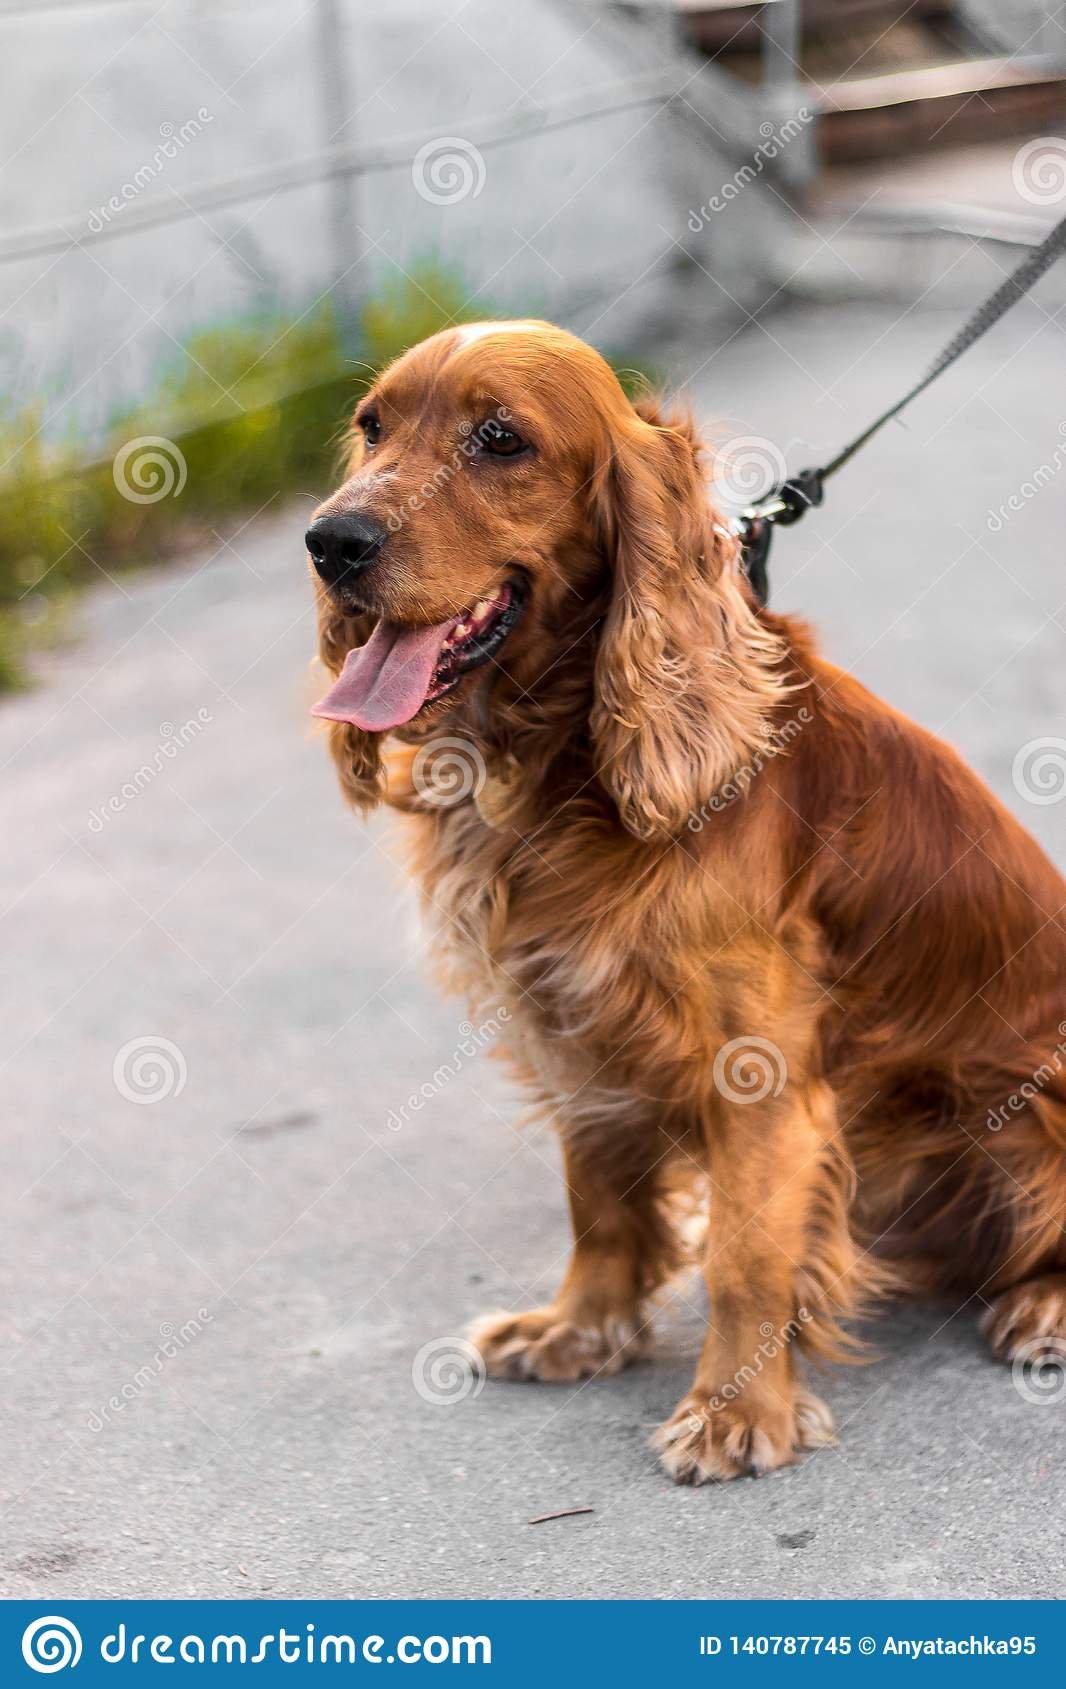 A red dog on the street sits in profile, a serious dog muzzle, focused it is a watchdog